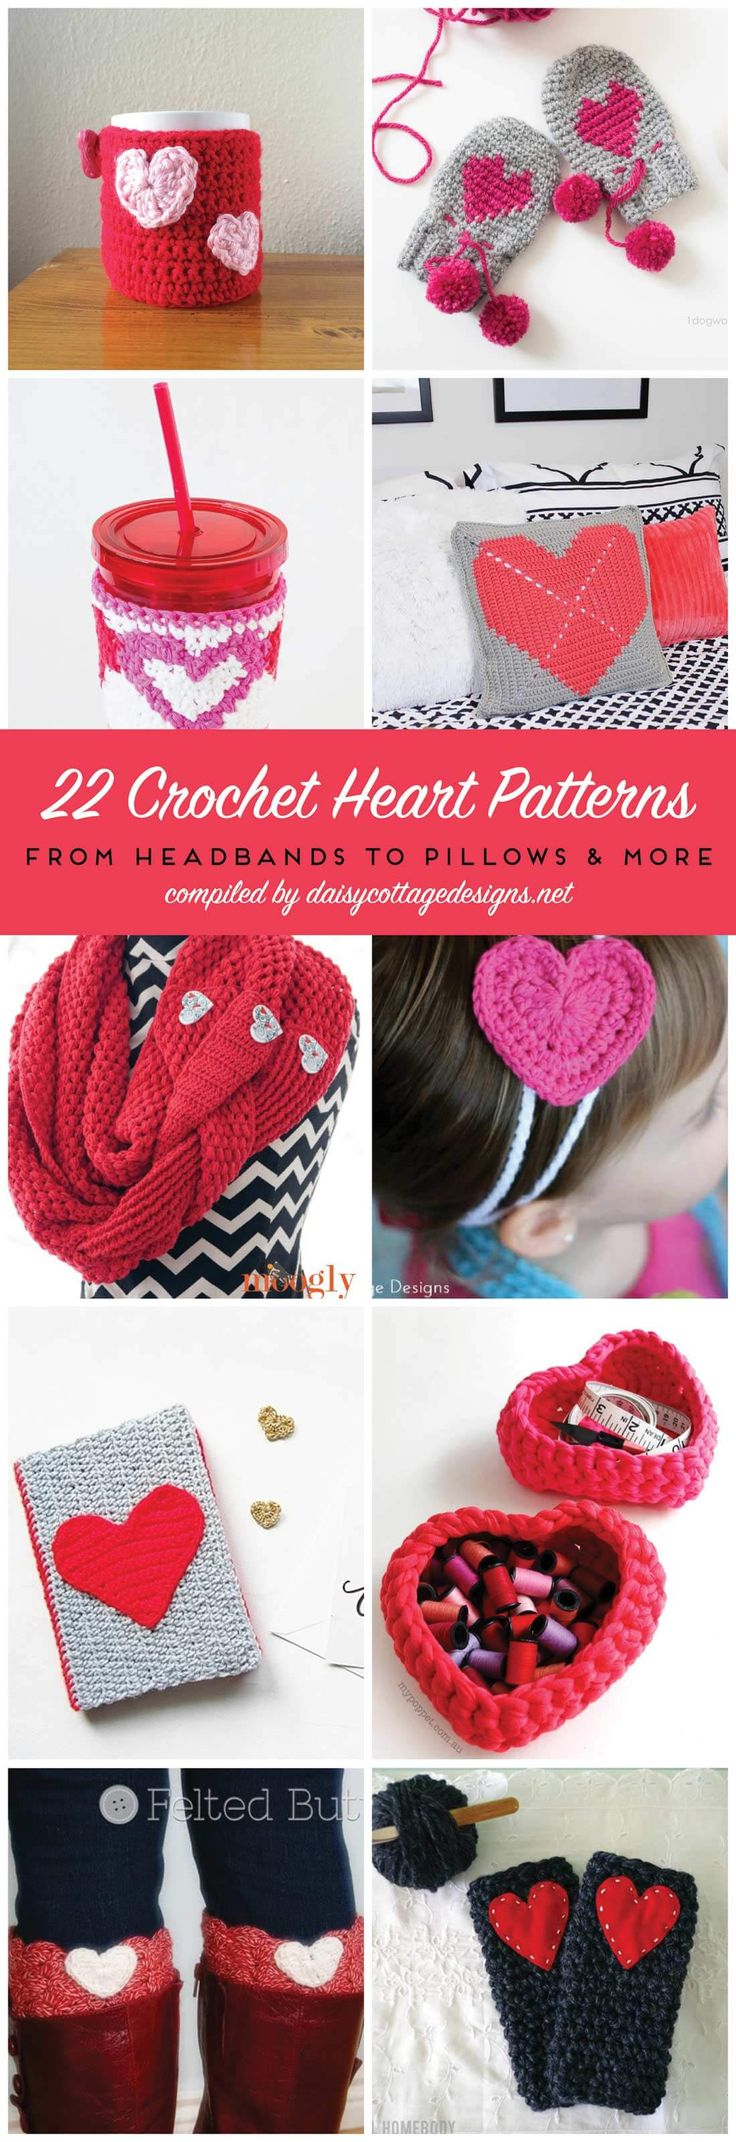 crochet heart patterns   free crochet patterns   Daisy Cottage Designs  These crochet patterns make wonderful gifts for everyone on your list this Valentine's Day!